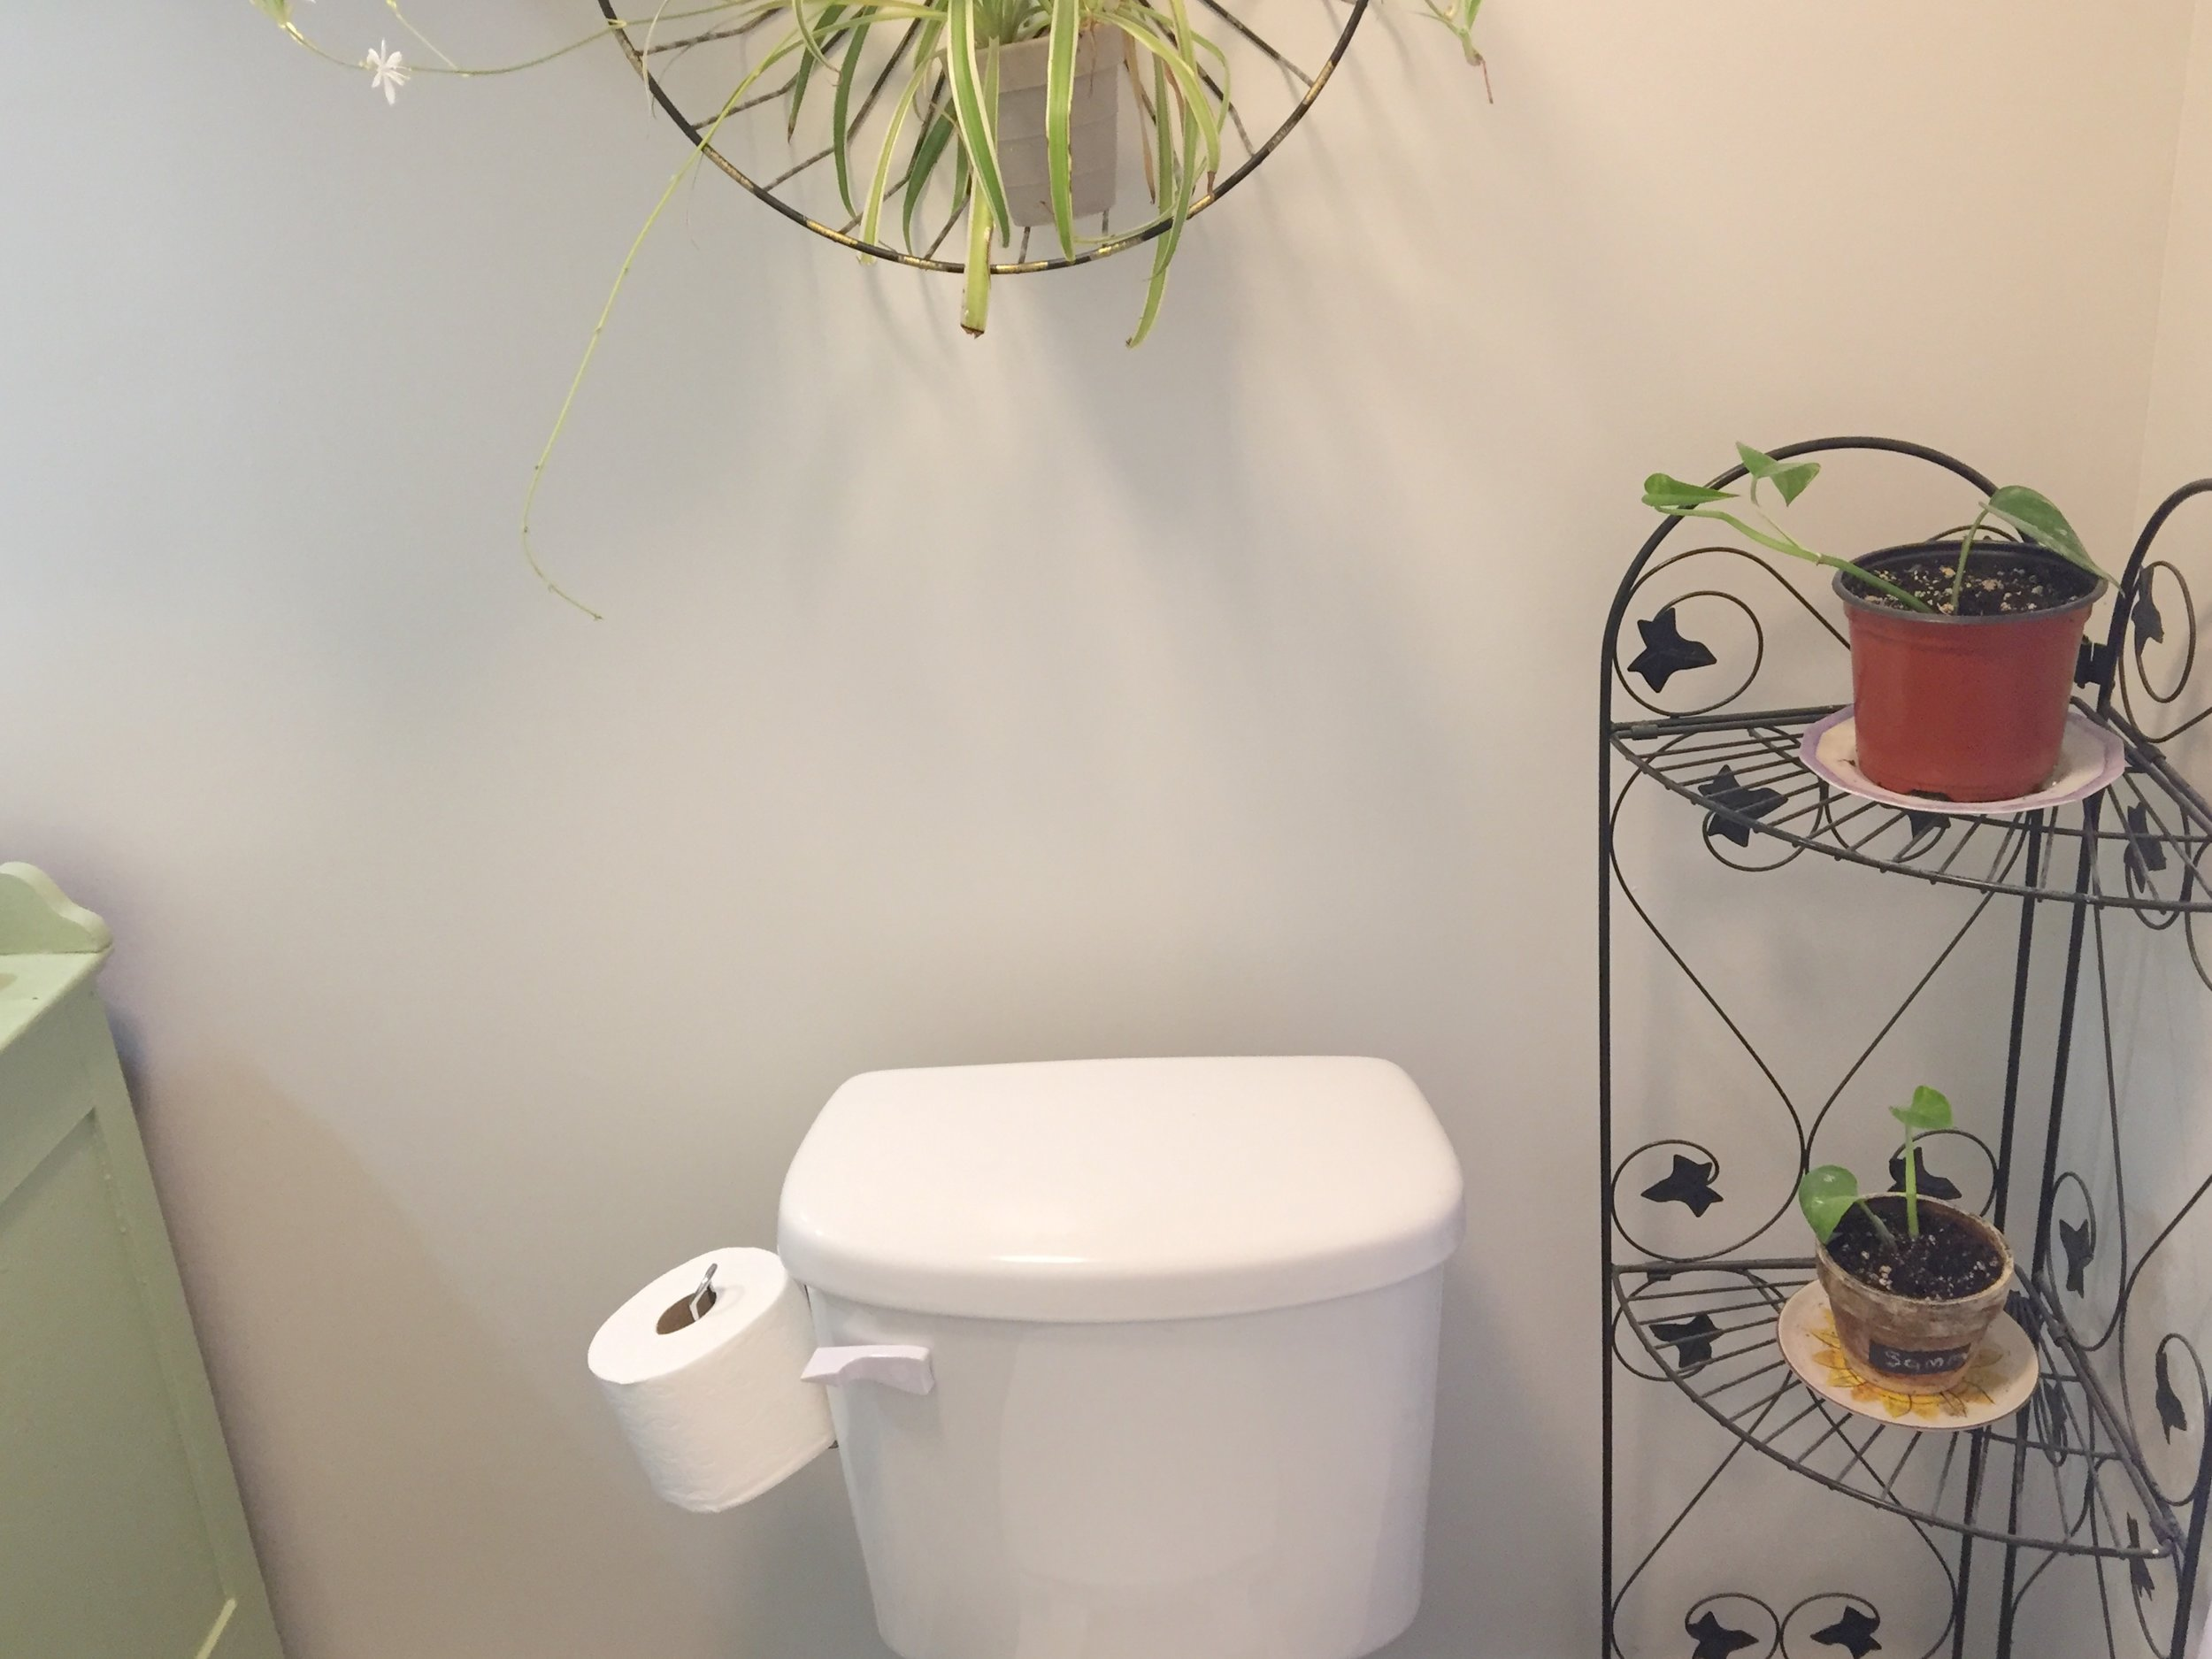 plants by toilet straight.jpg